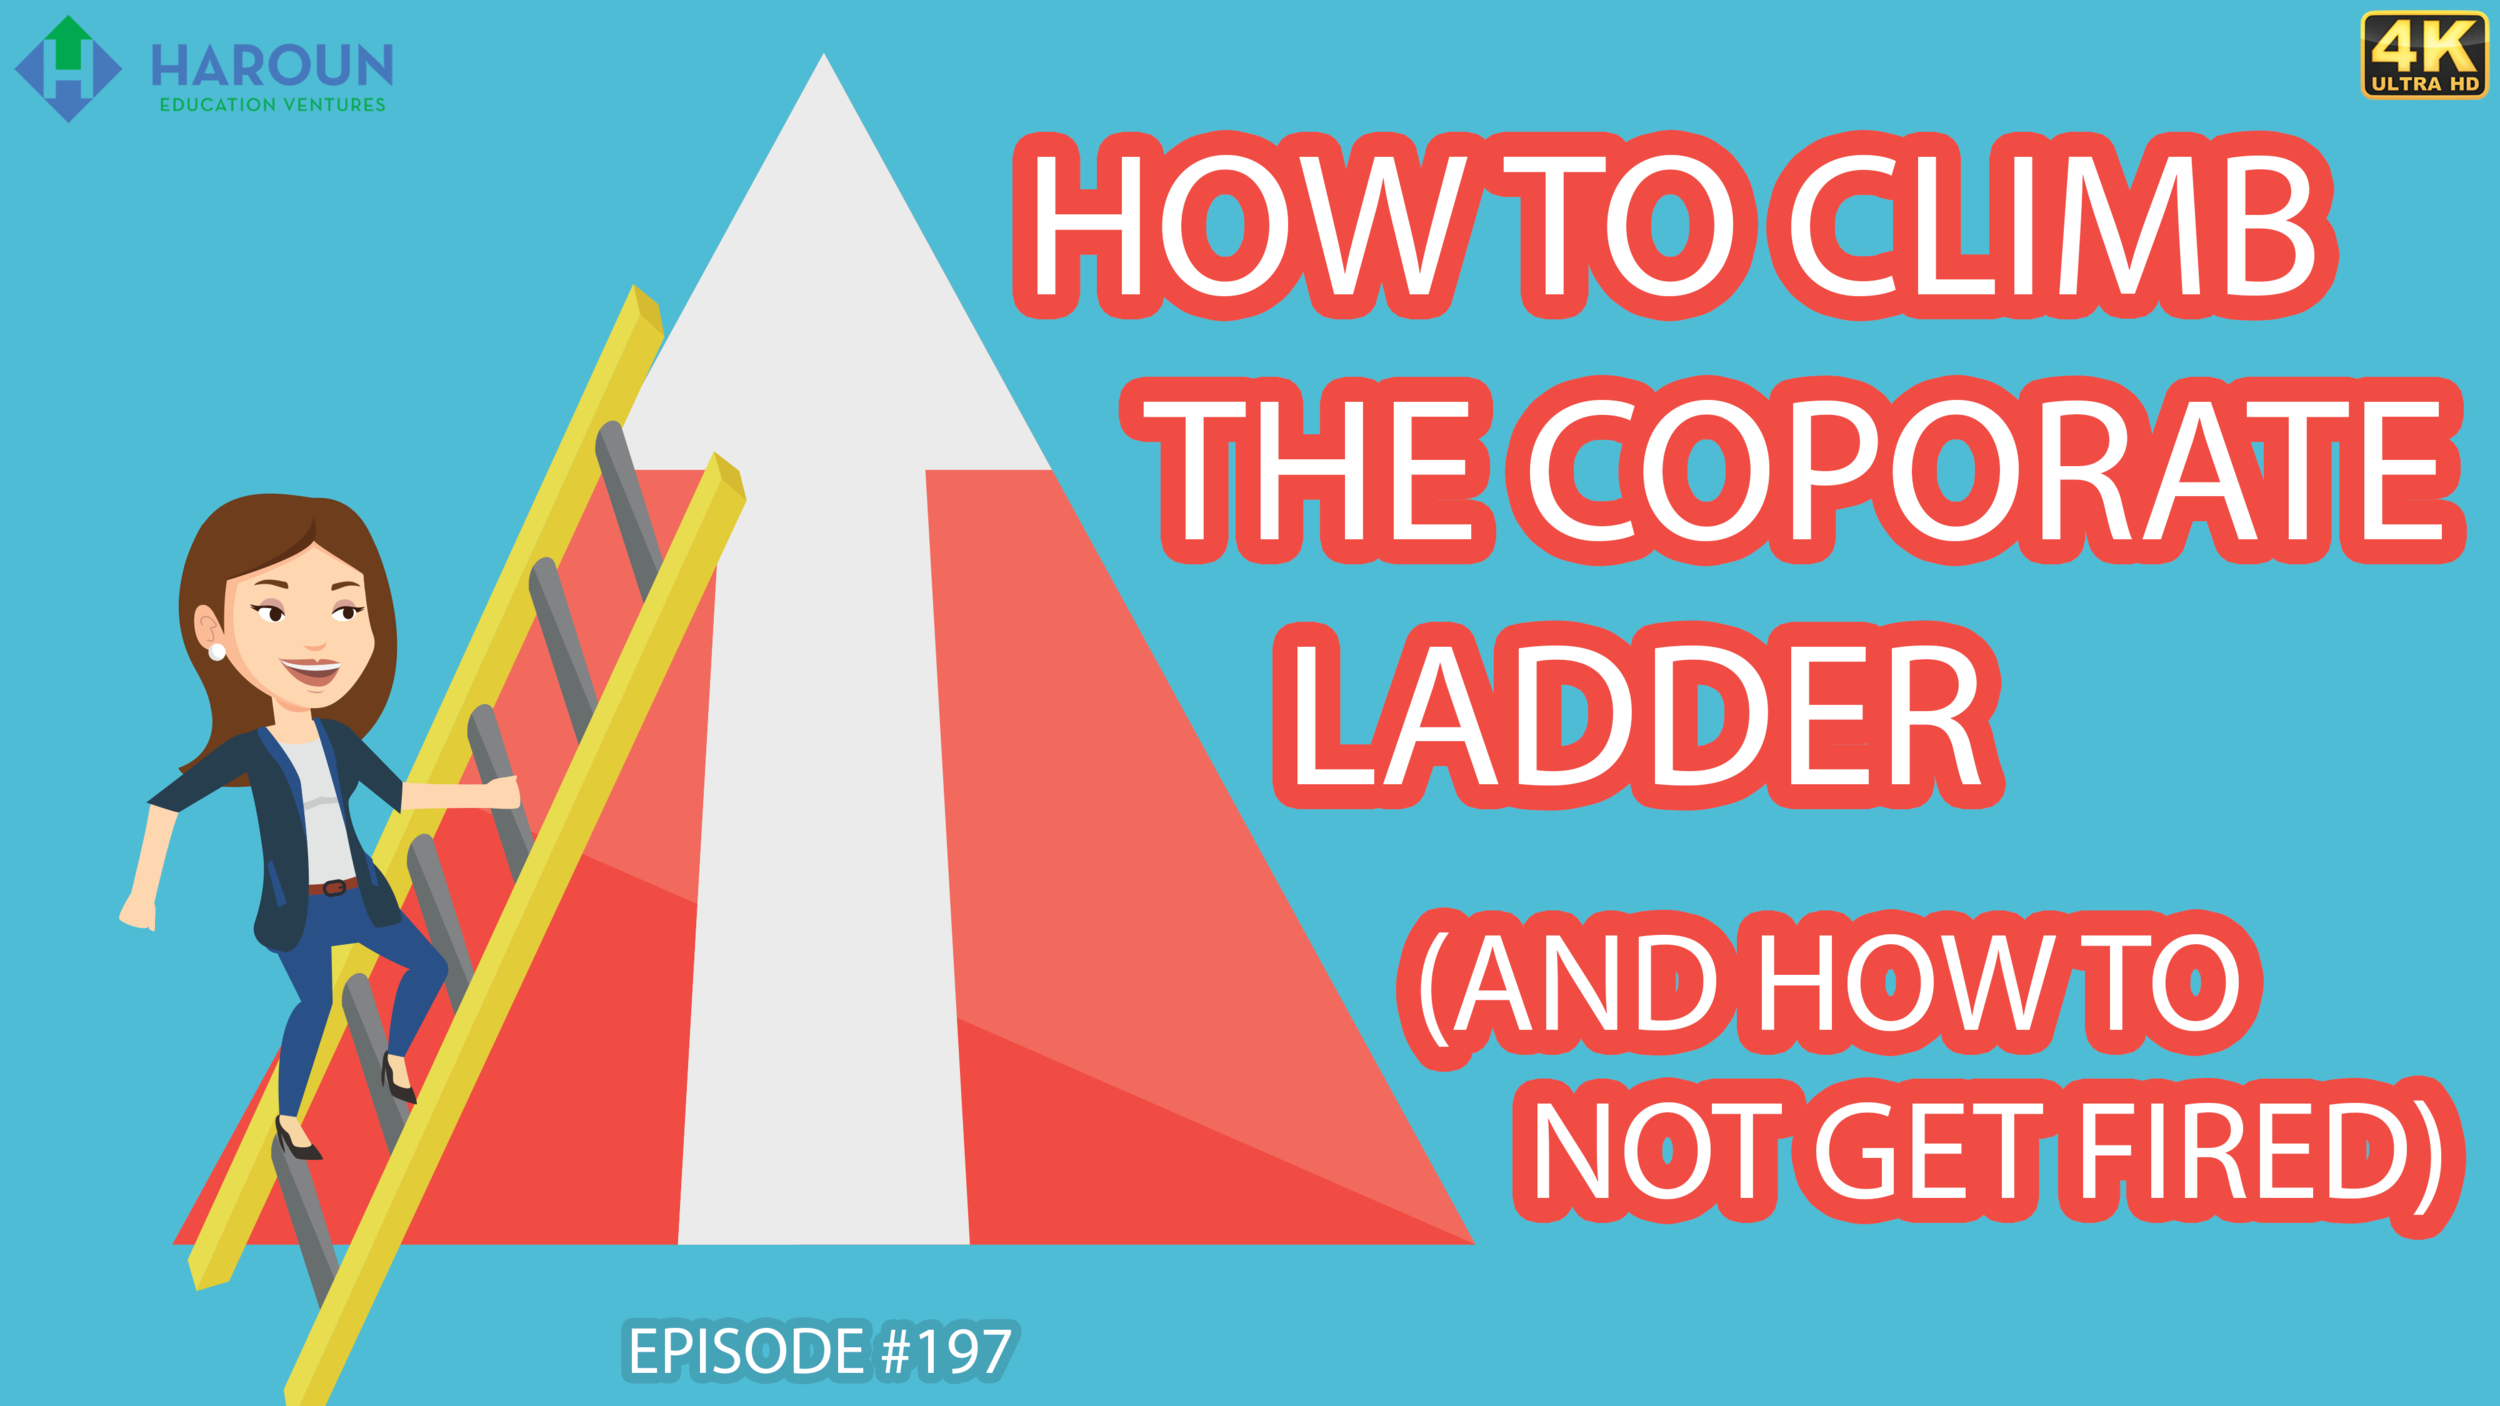 DAY_7_2_12_19_How to Climb the Corporate Ladder (and How to Not Get Fired).png